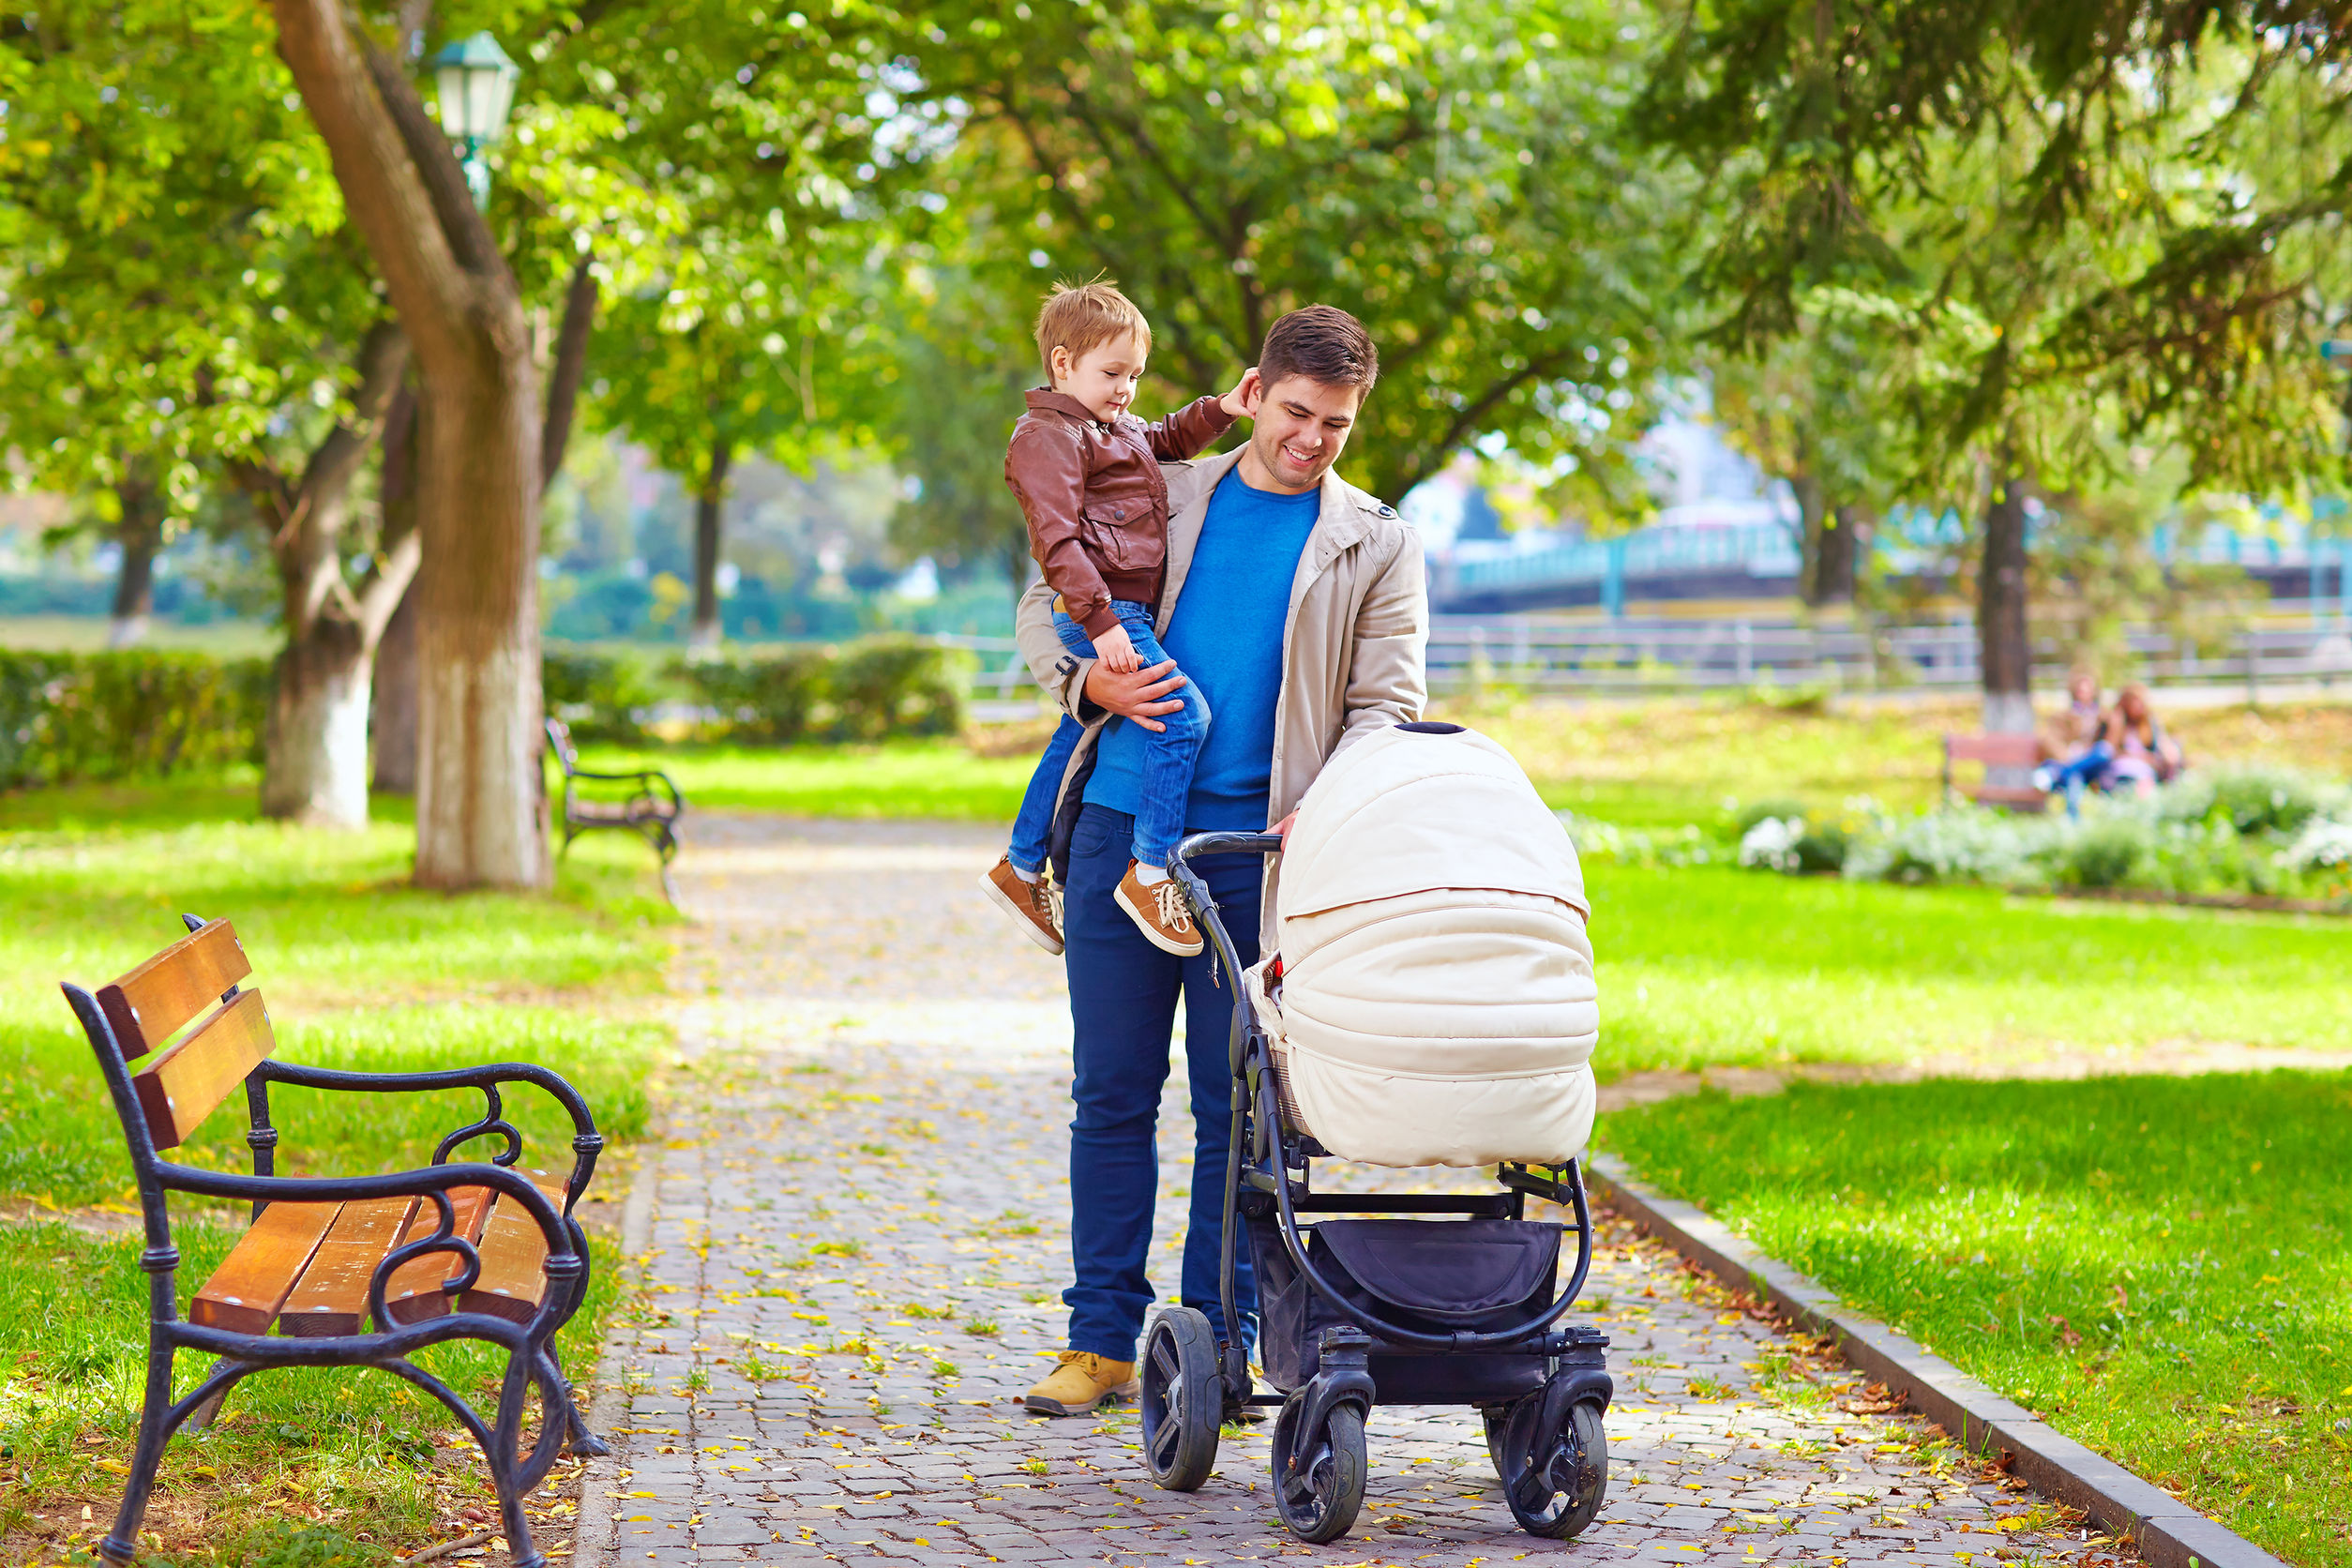 32371539 - father with kids walking in city park